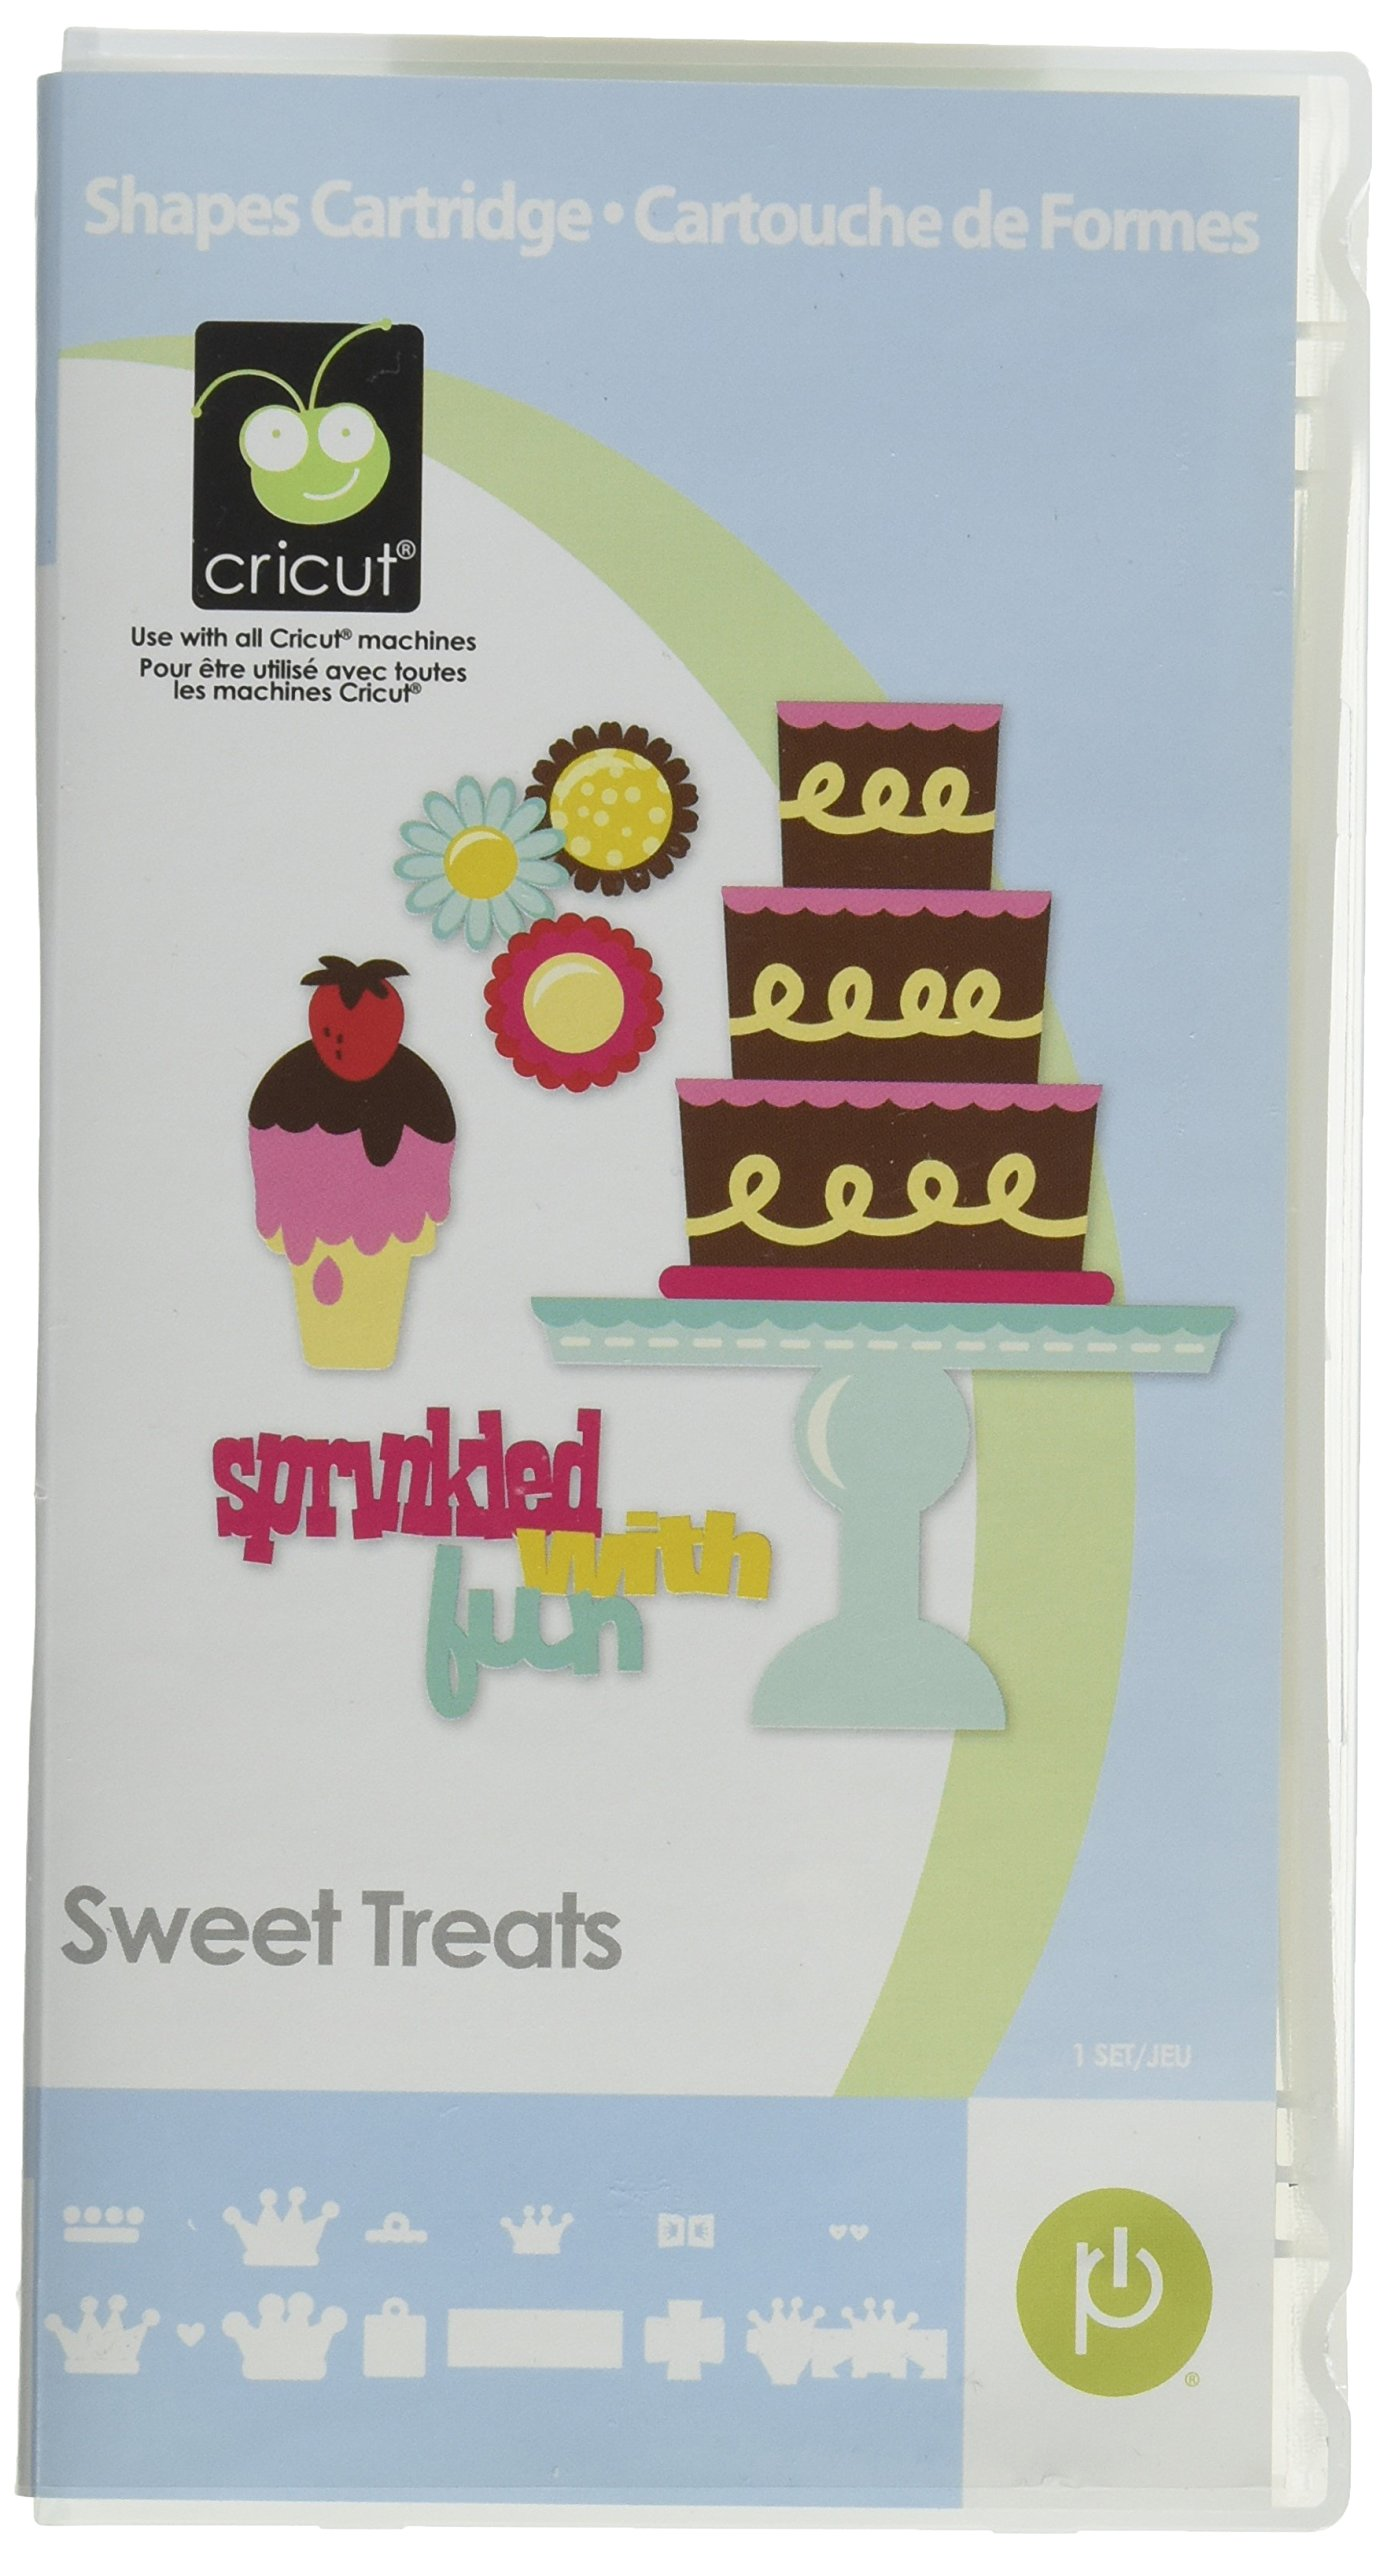 Provo Craft Cricut Cartridge, Sweet Treats